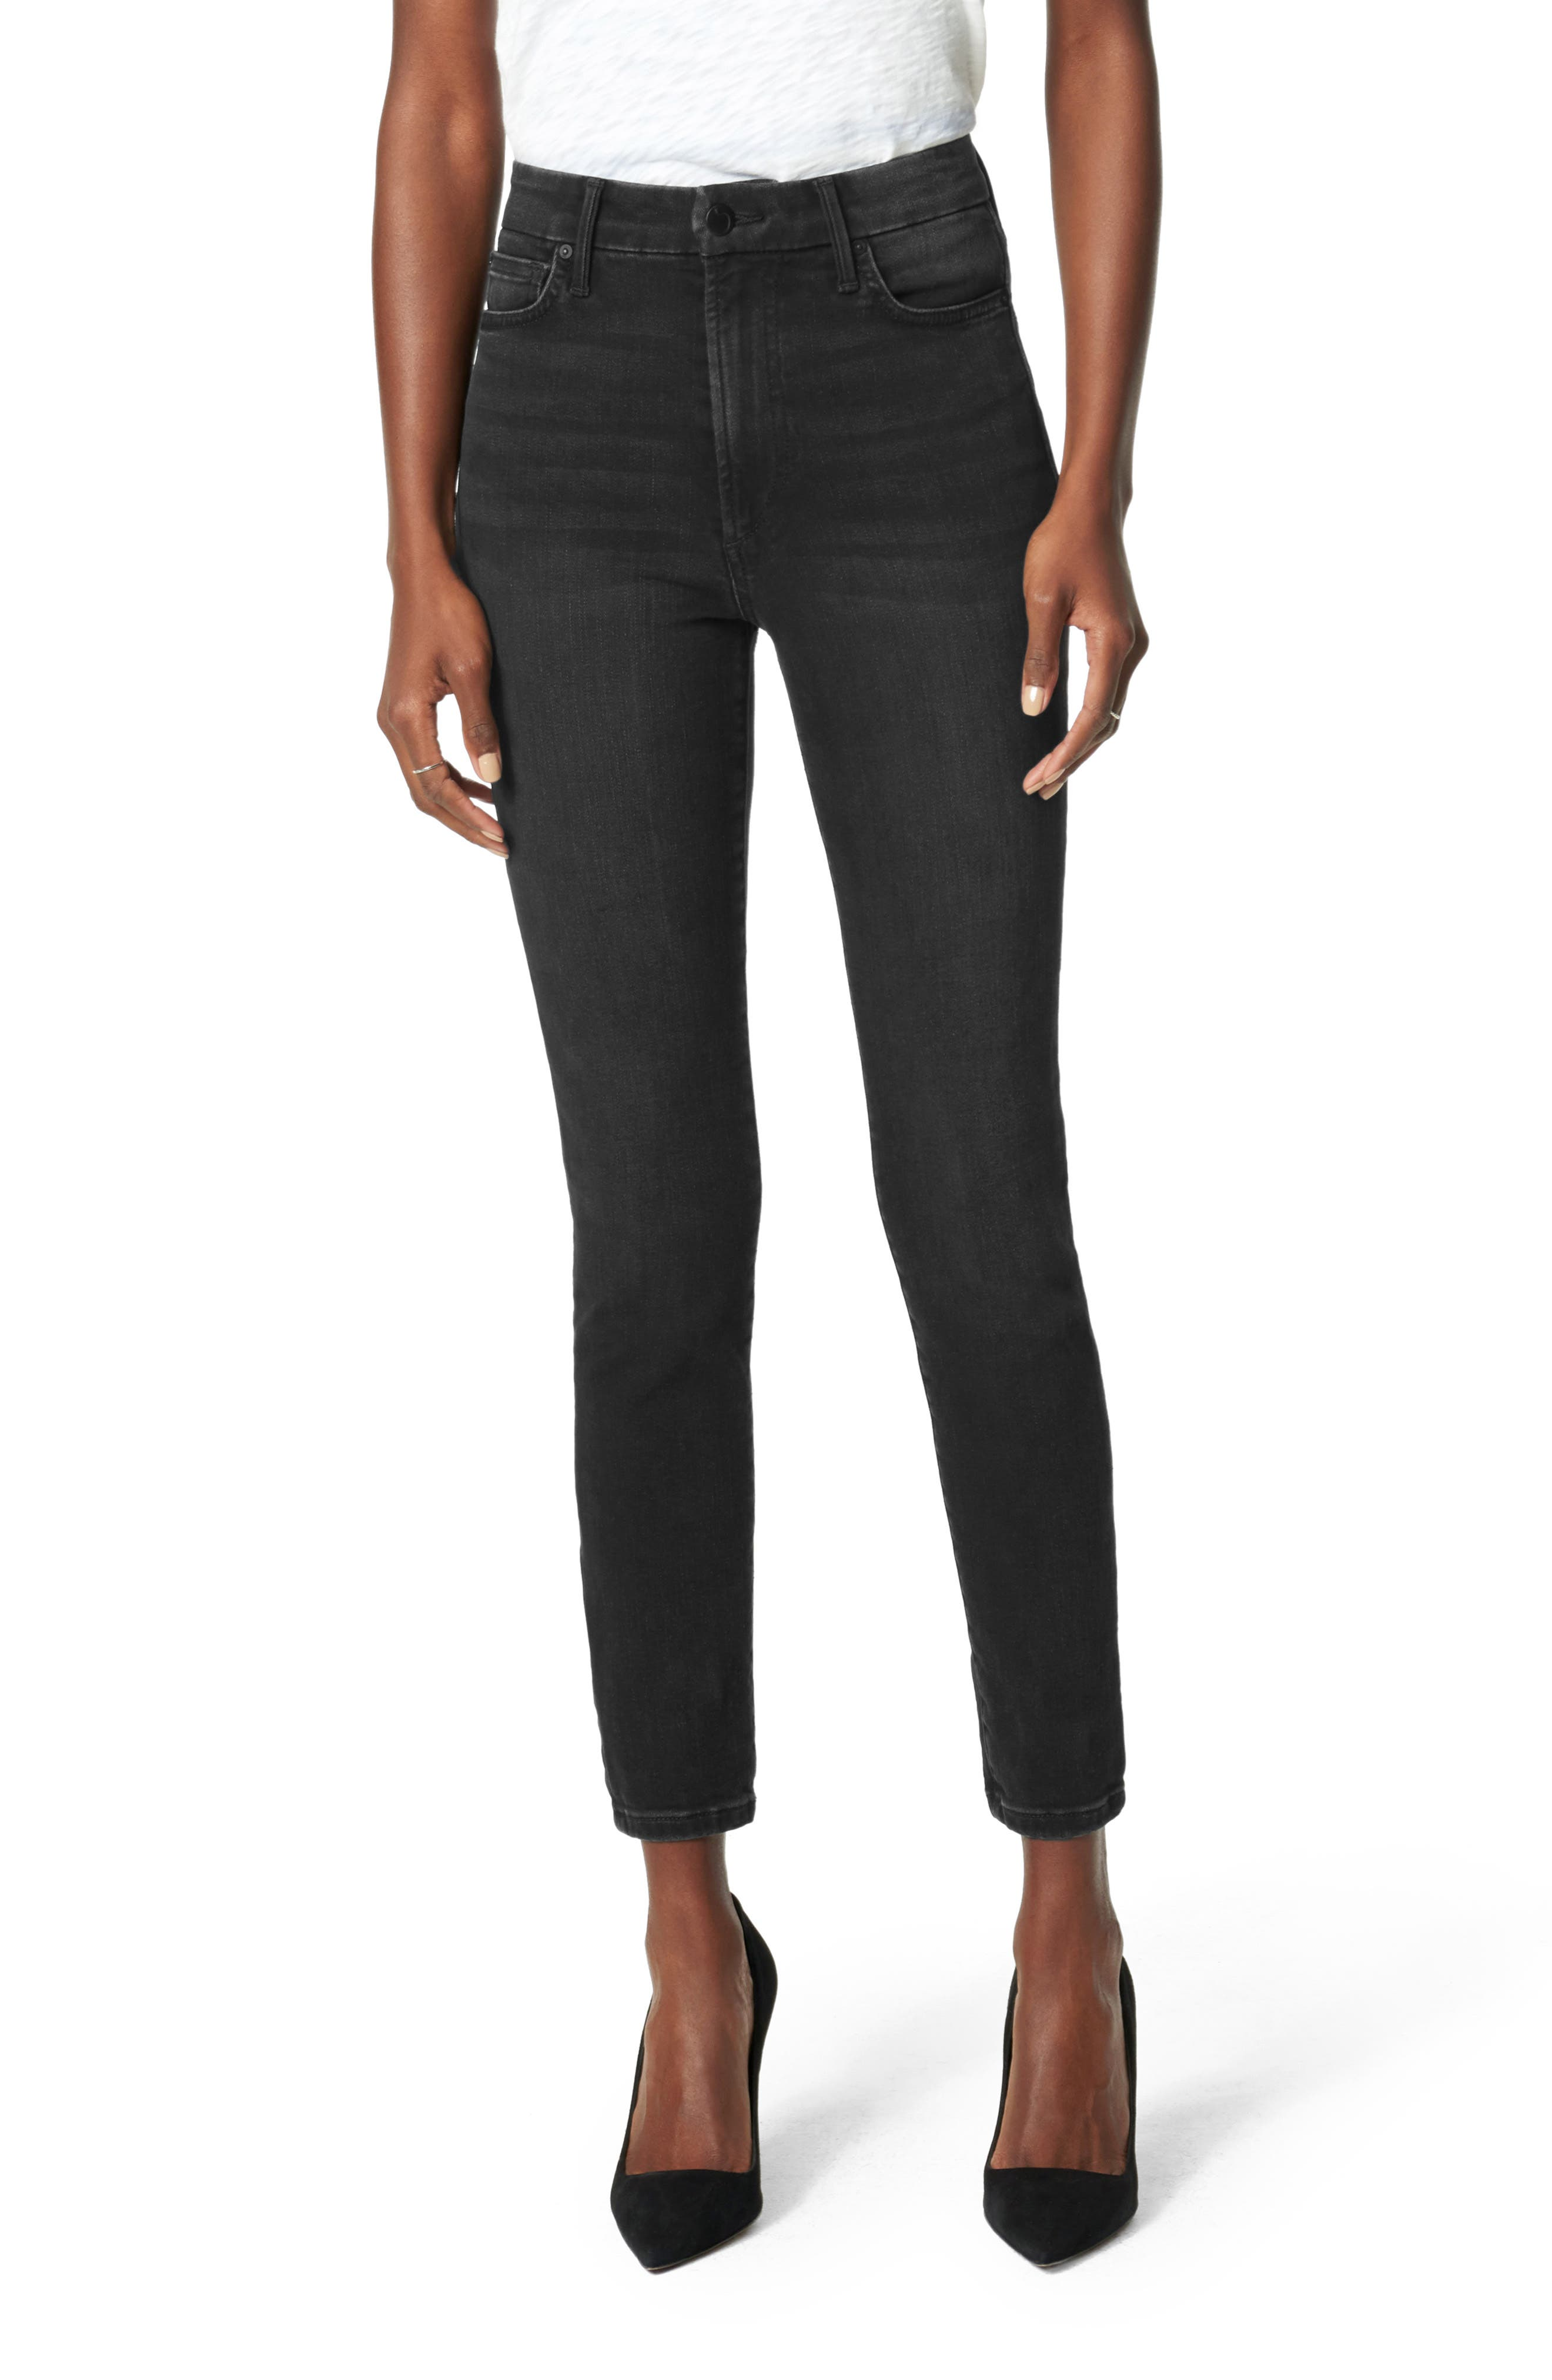 Joes Jeans Womens Charlie High Rise Skinny Jean